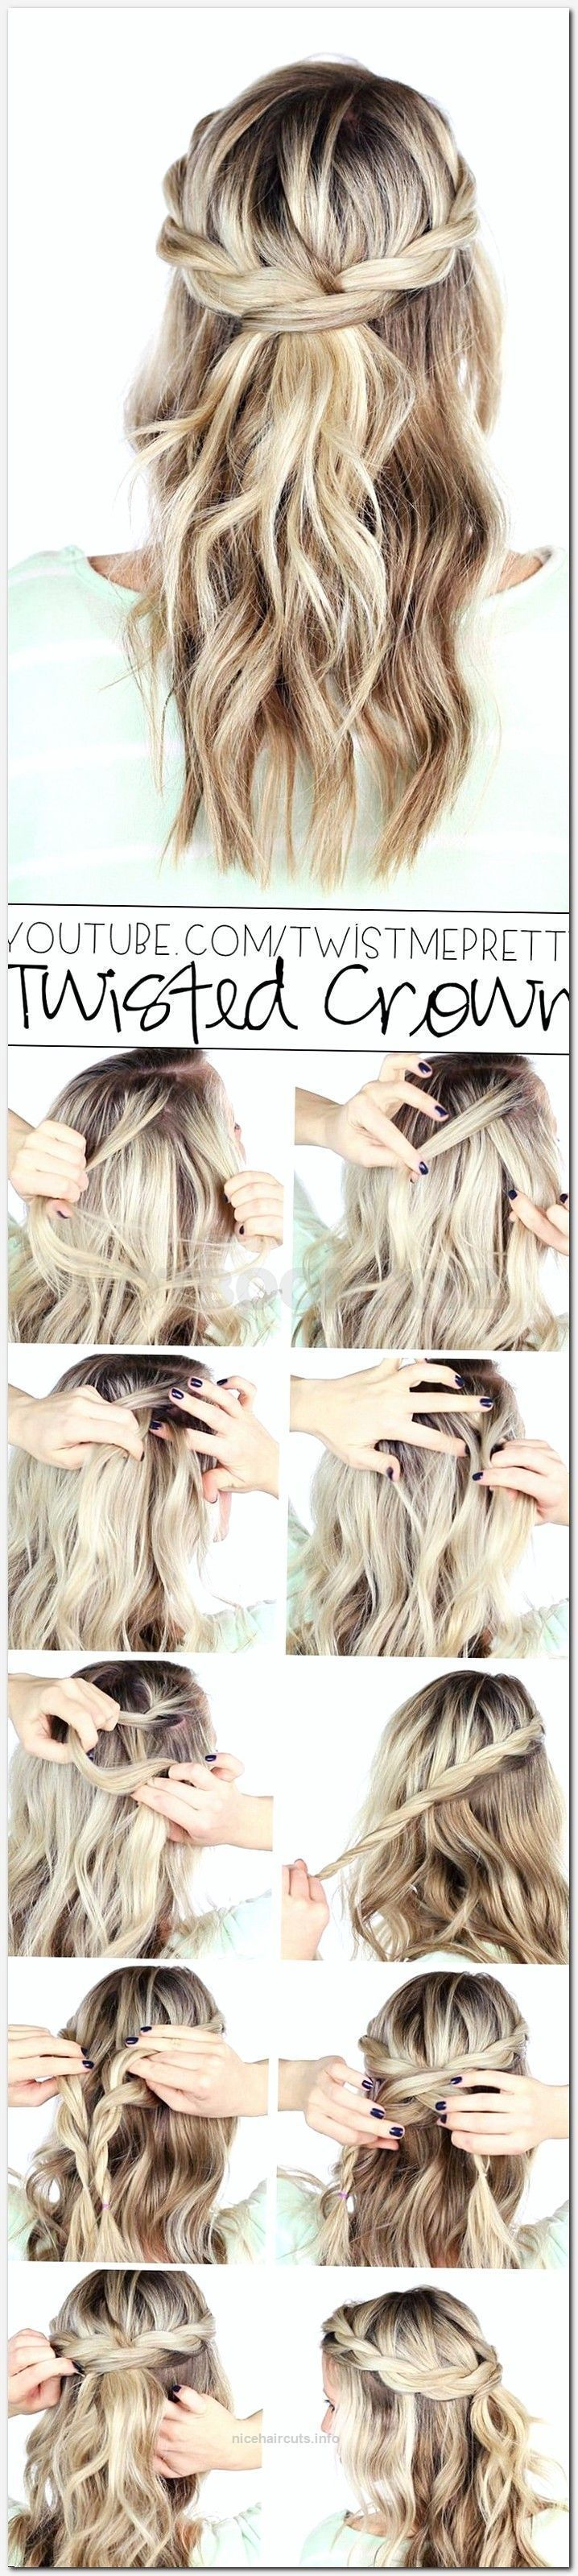 light hairstyles for children with la + # simple #philosophy #s for # hair support - #e ...